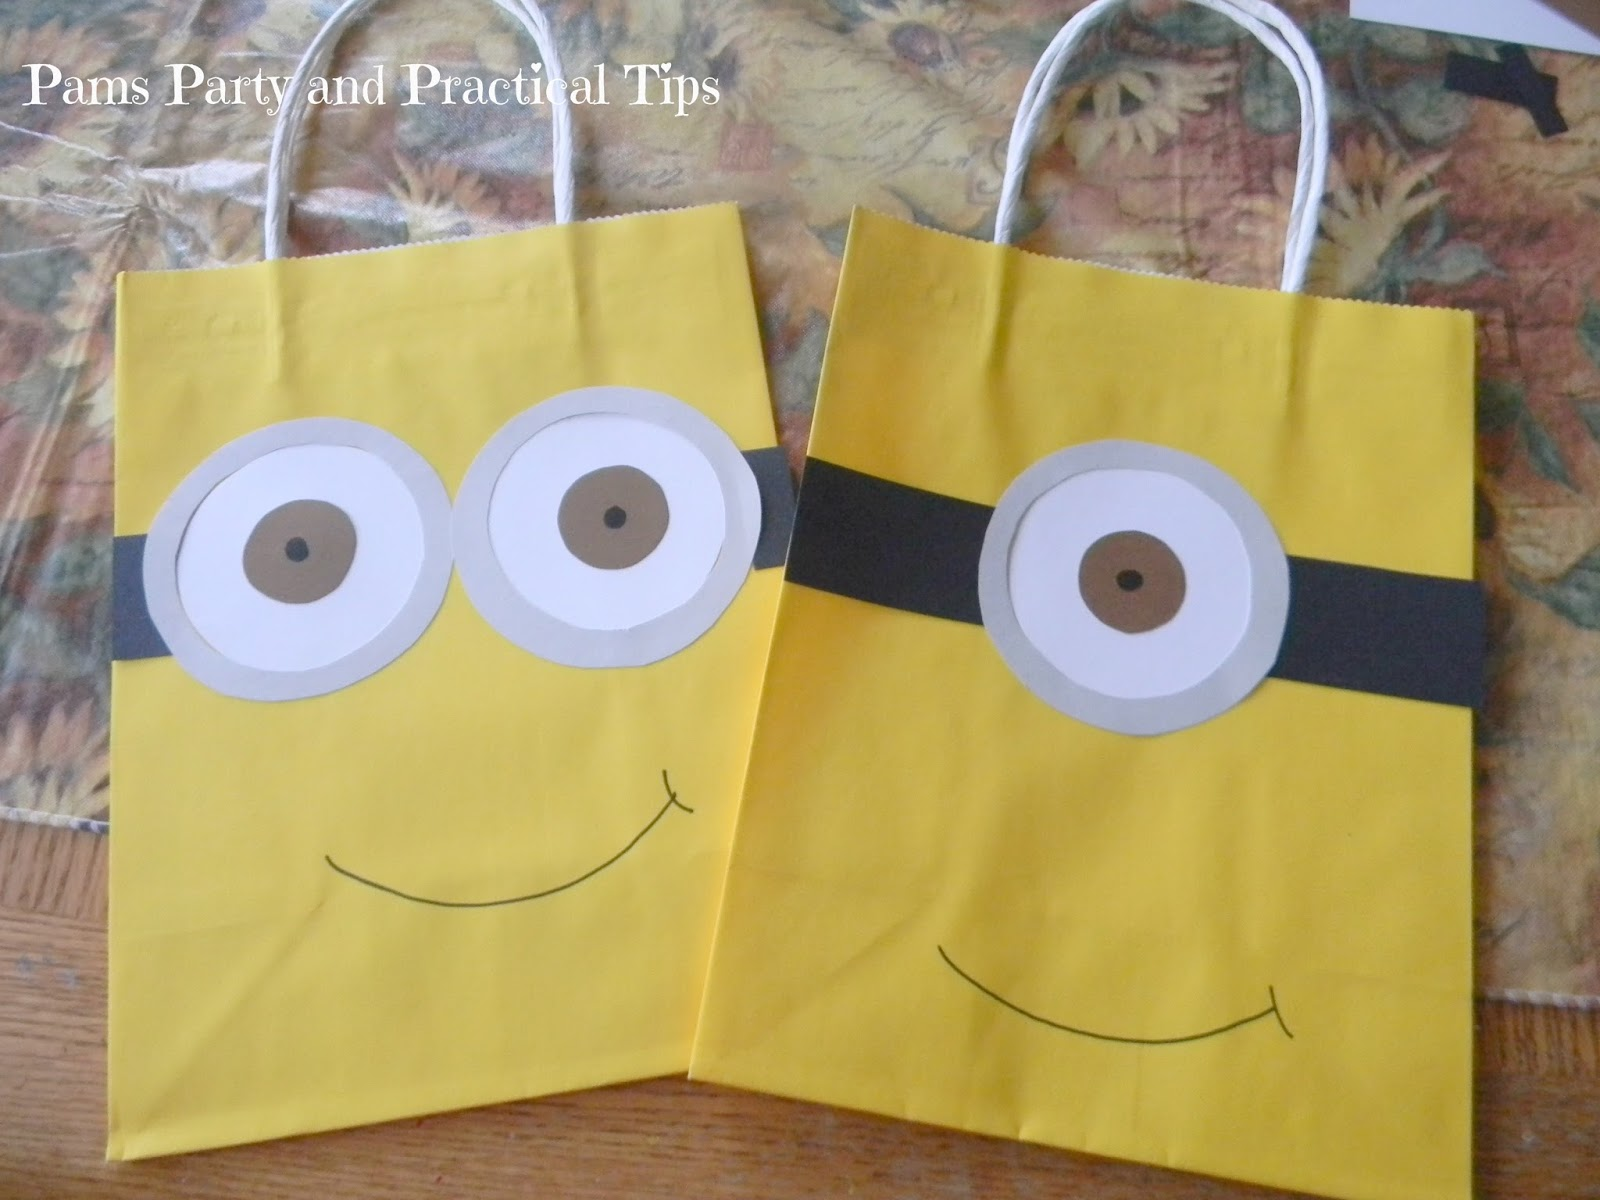 pams party practical tips how to make despicable me minions. Black Bedroom Furniture Sets. Home Design Ideas